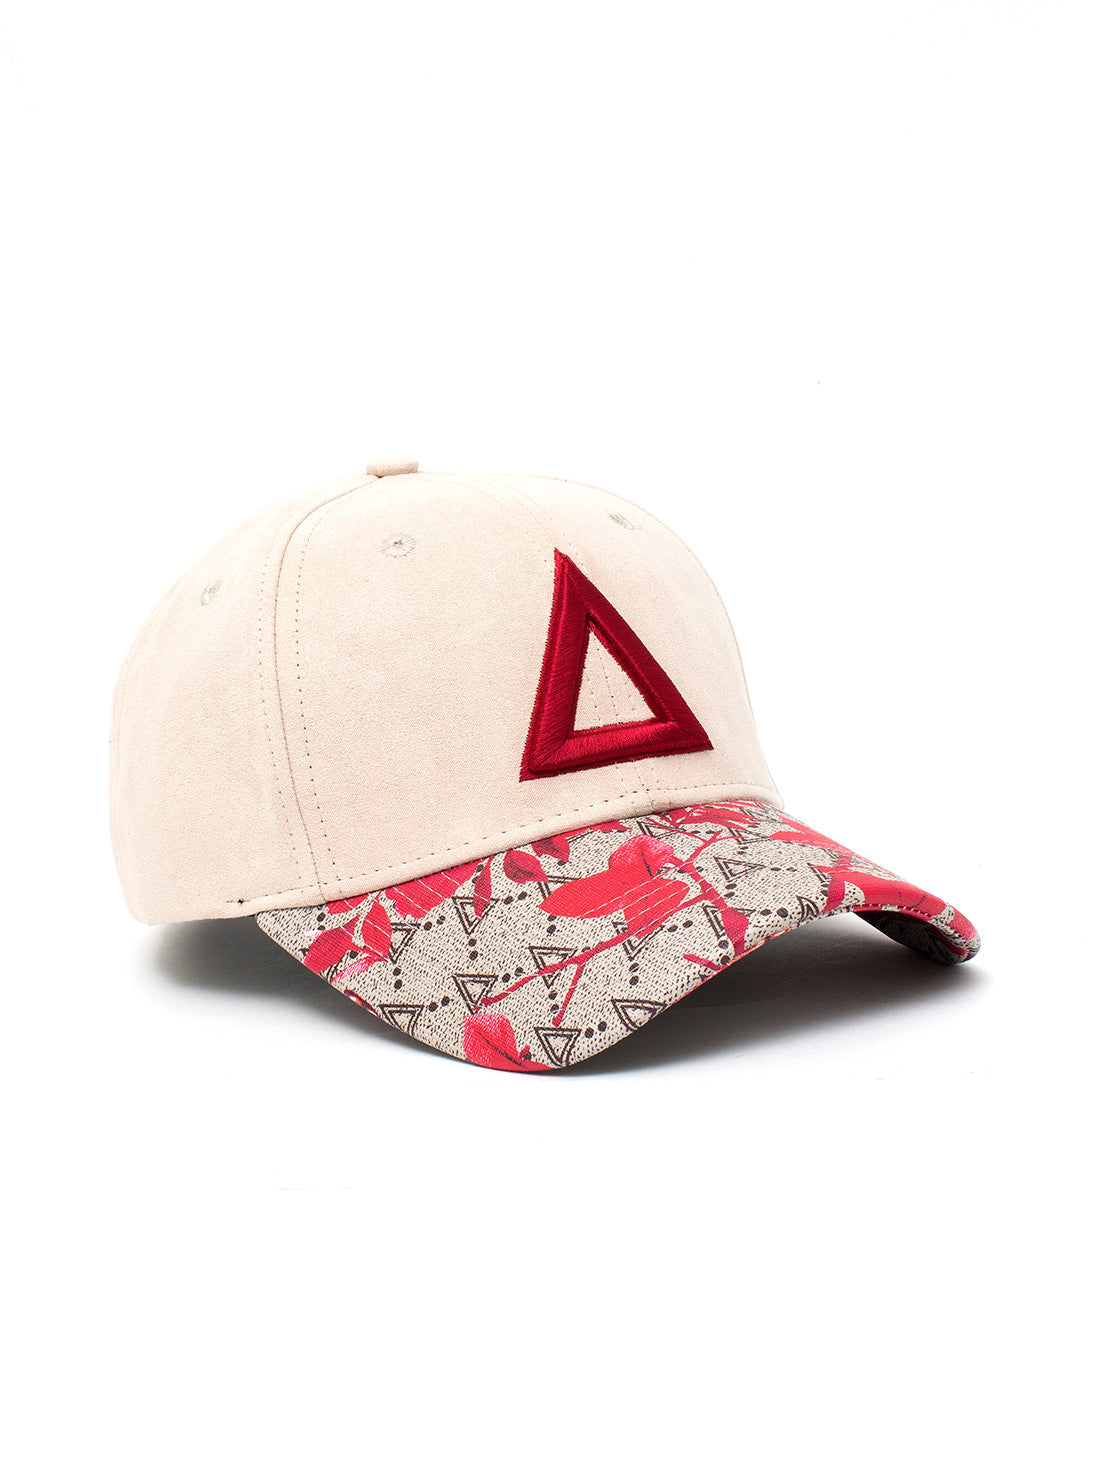 Limited Bird/Flower Red Triswag